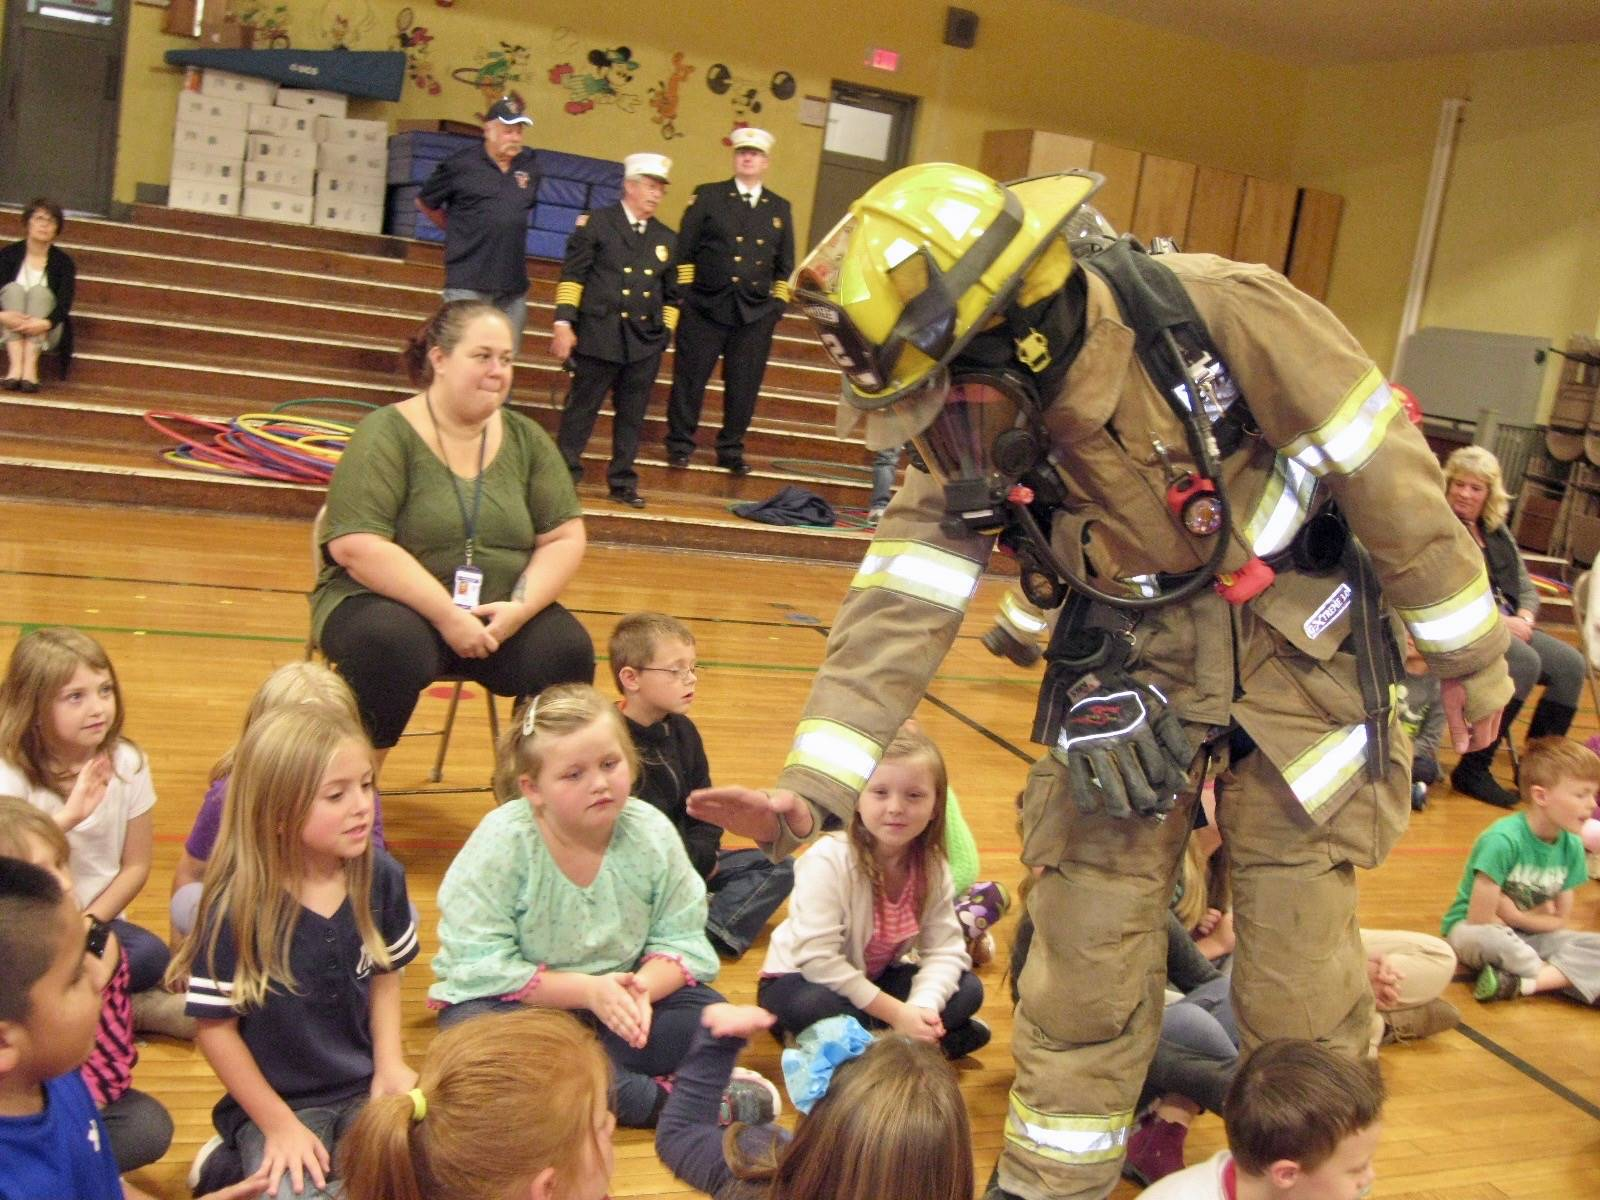 firefighter gives students high fives!